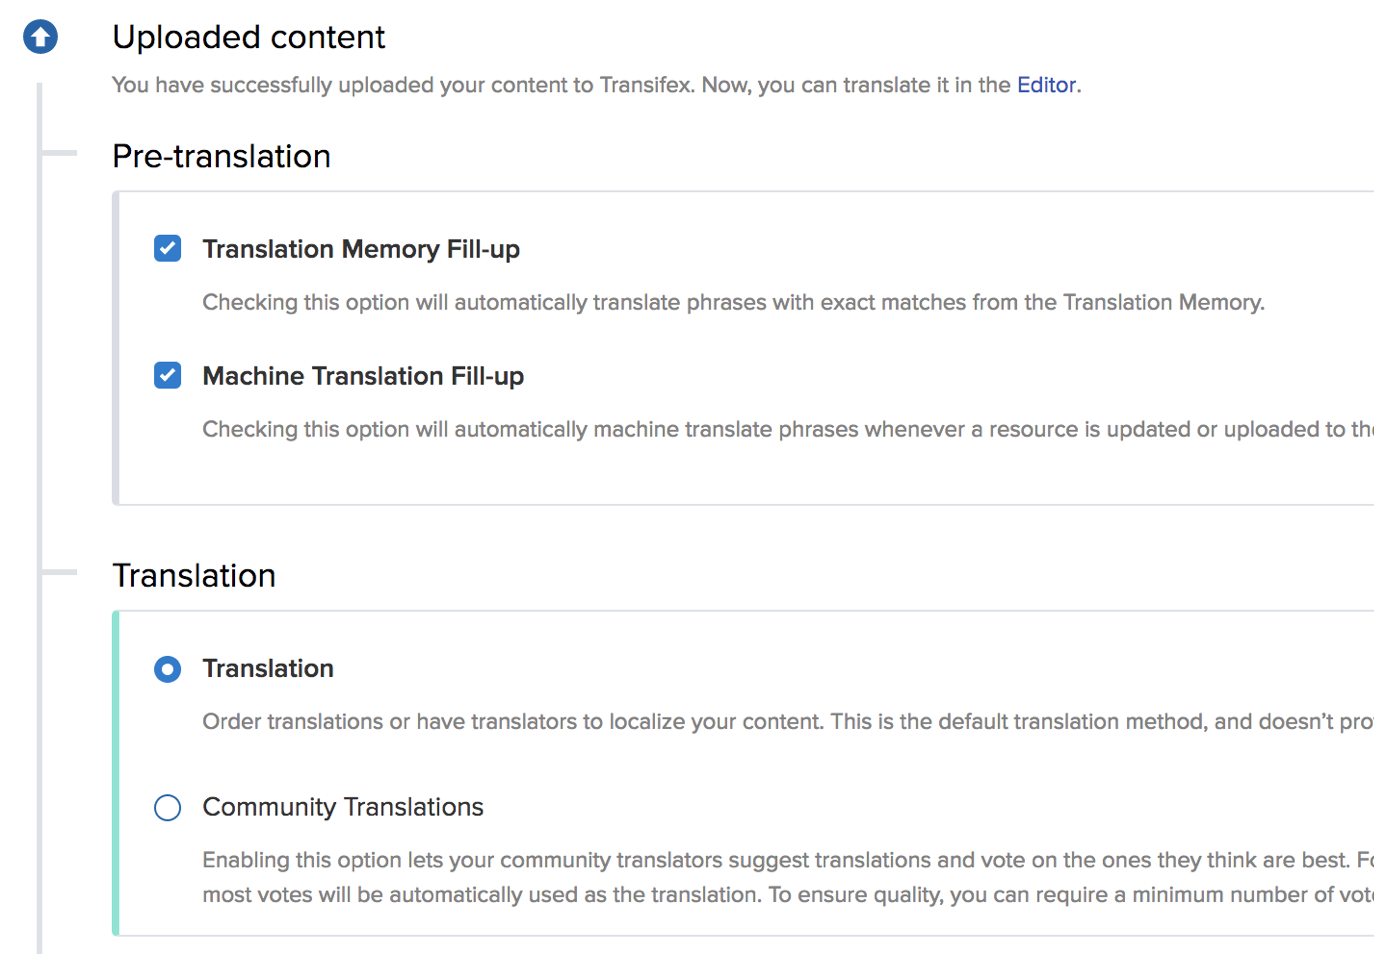 There isn't a one-size-fits-all approach to translating your content. Transifex lets you set up and use the translation workflow you need.